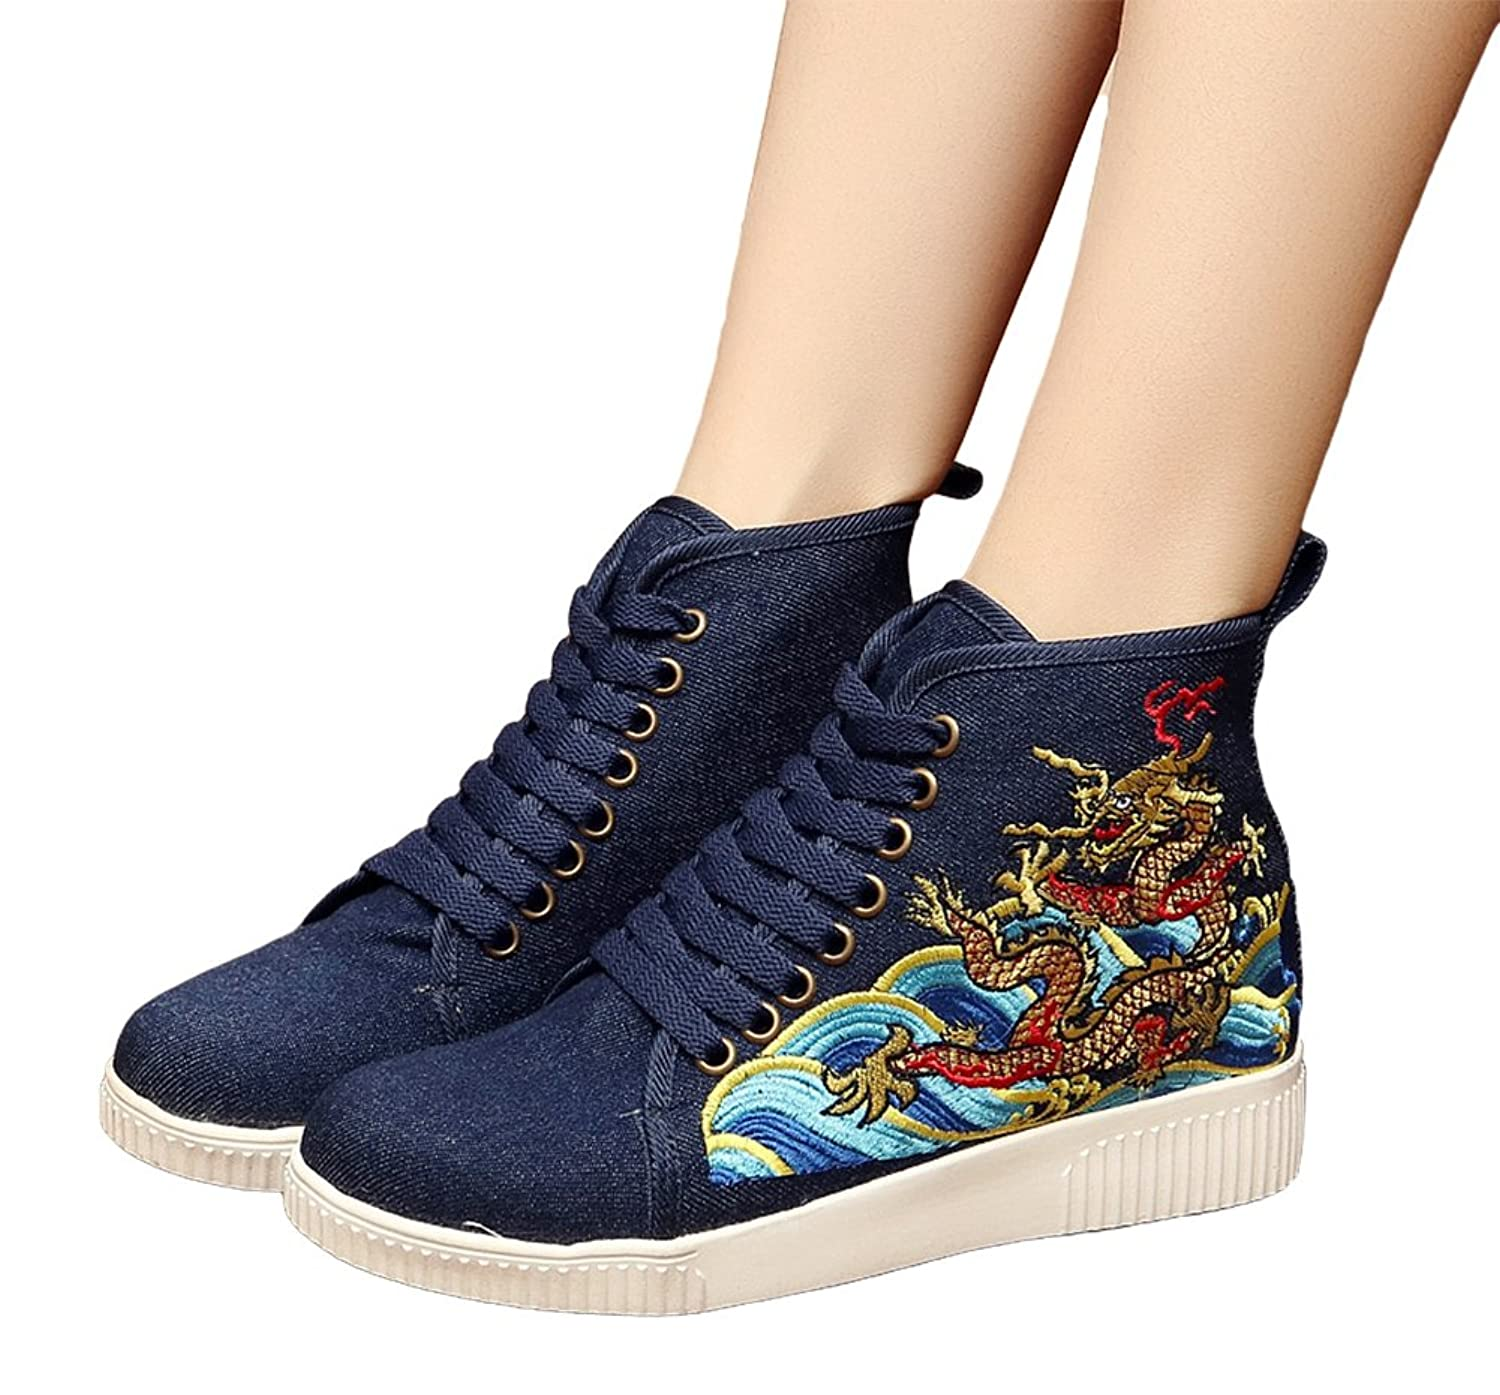 7851b2e41d01 AvaCostume Womens Dragon Embroidery Lace-up Casual Walking Sneakers free  shipping